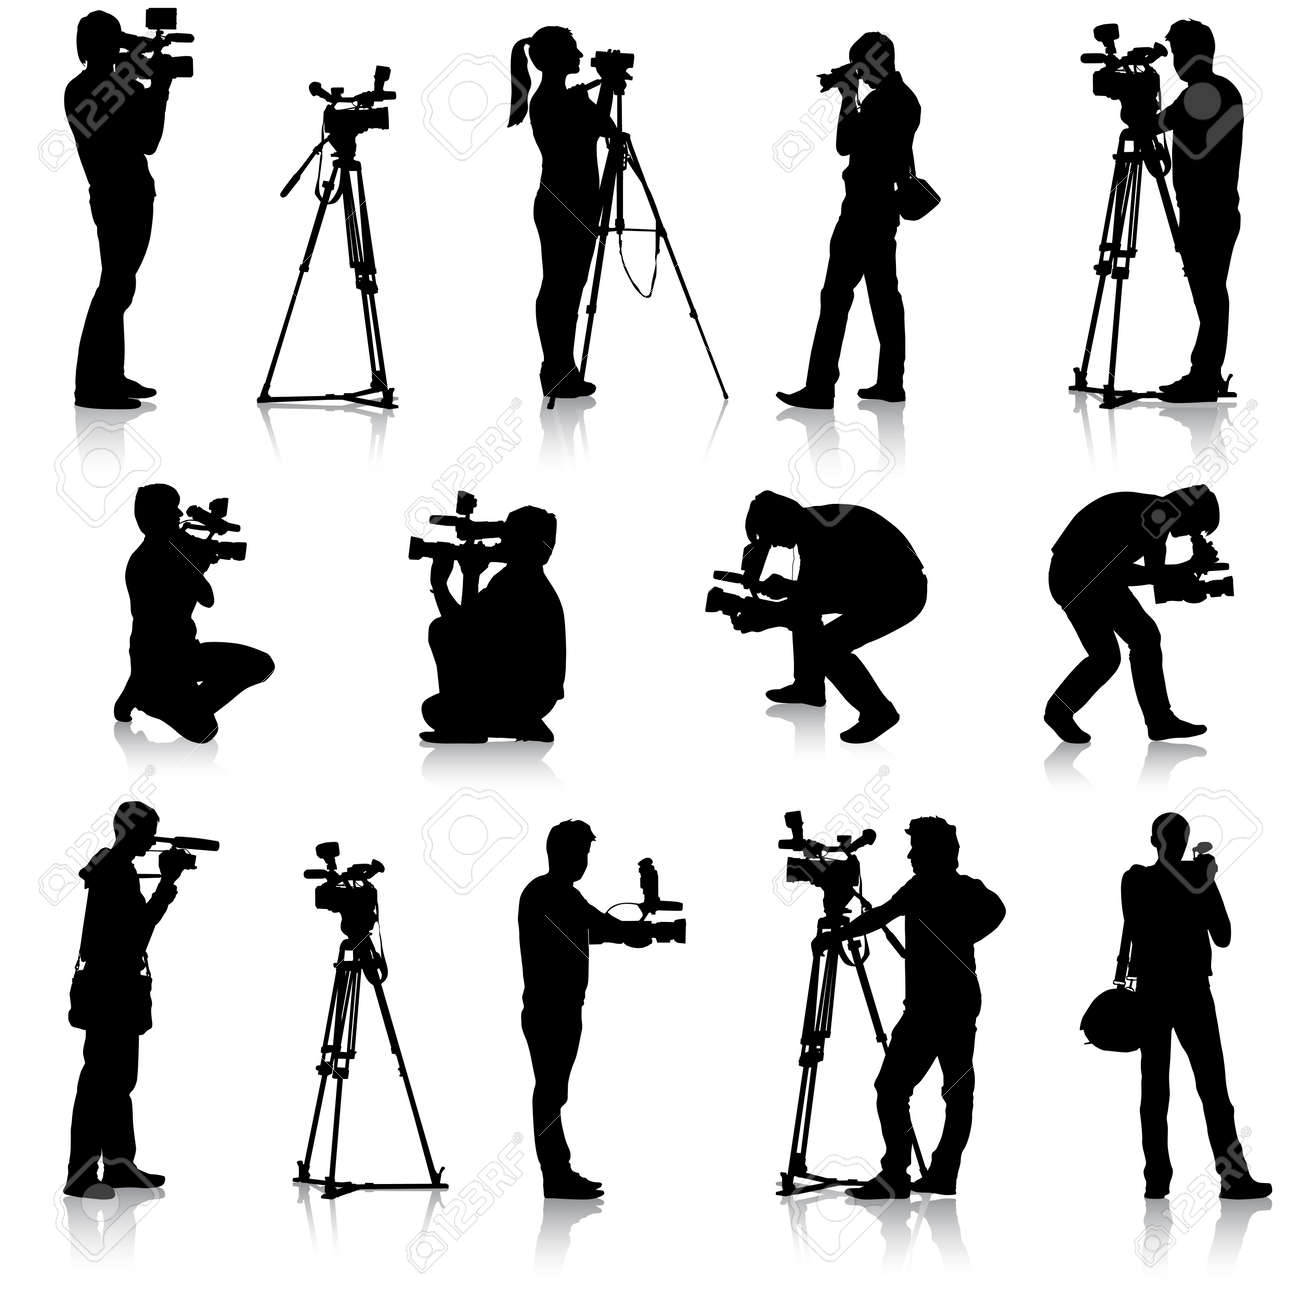 Cameraman with video camera. Silhouettes on white background. Vector illustration. - 39162060